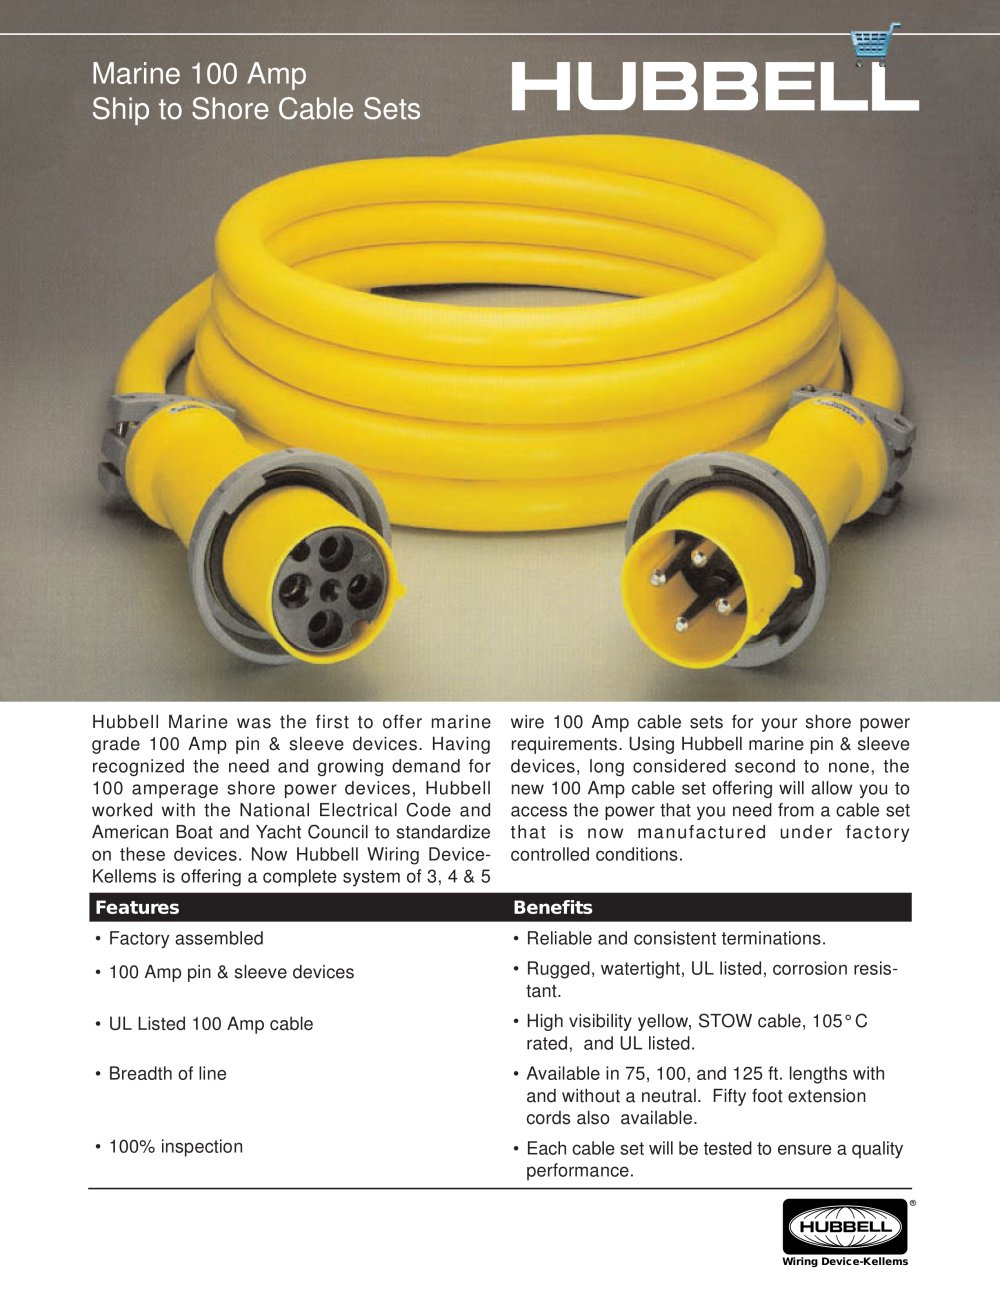 Marine 100 Amp Ship To Shore Cable Sets Hubbell Pdf Catalogues Extension Cord 20a 250v Wiring Diagram 1 2 Pages